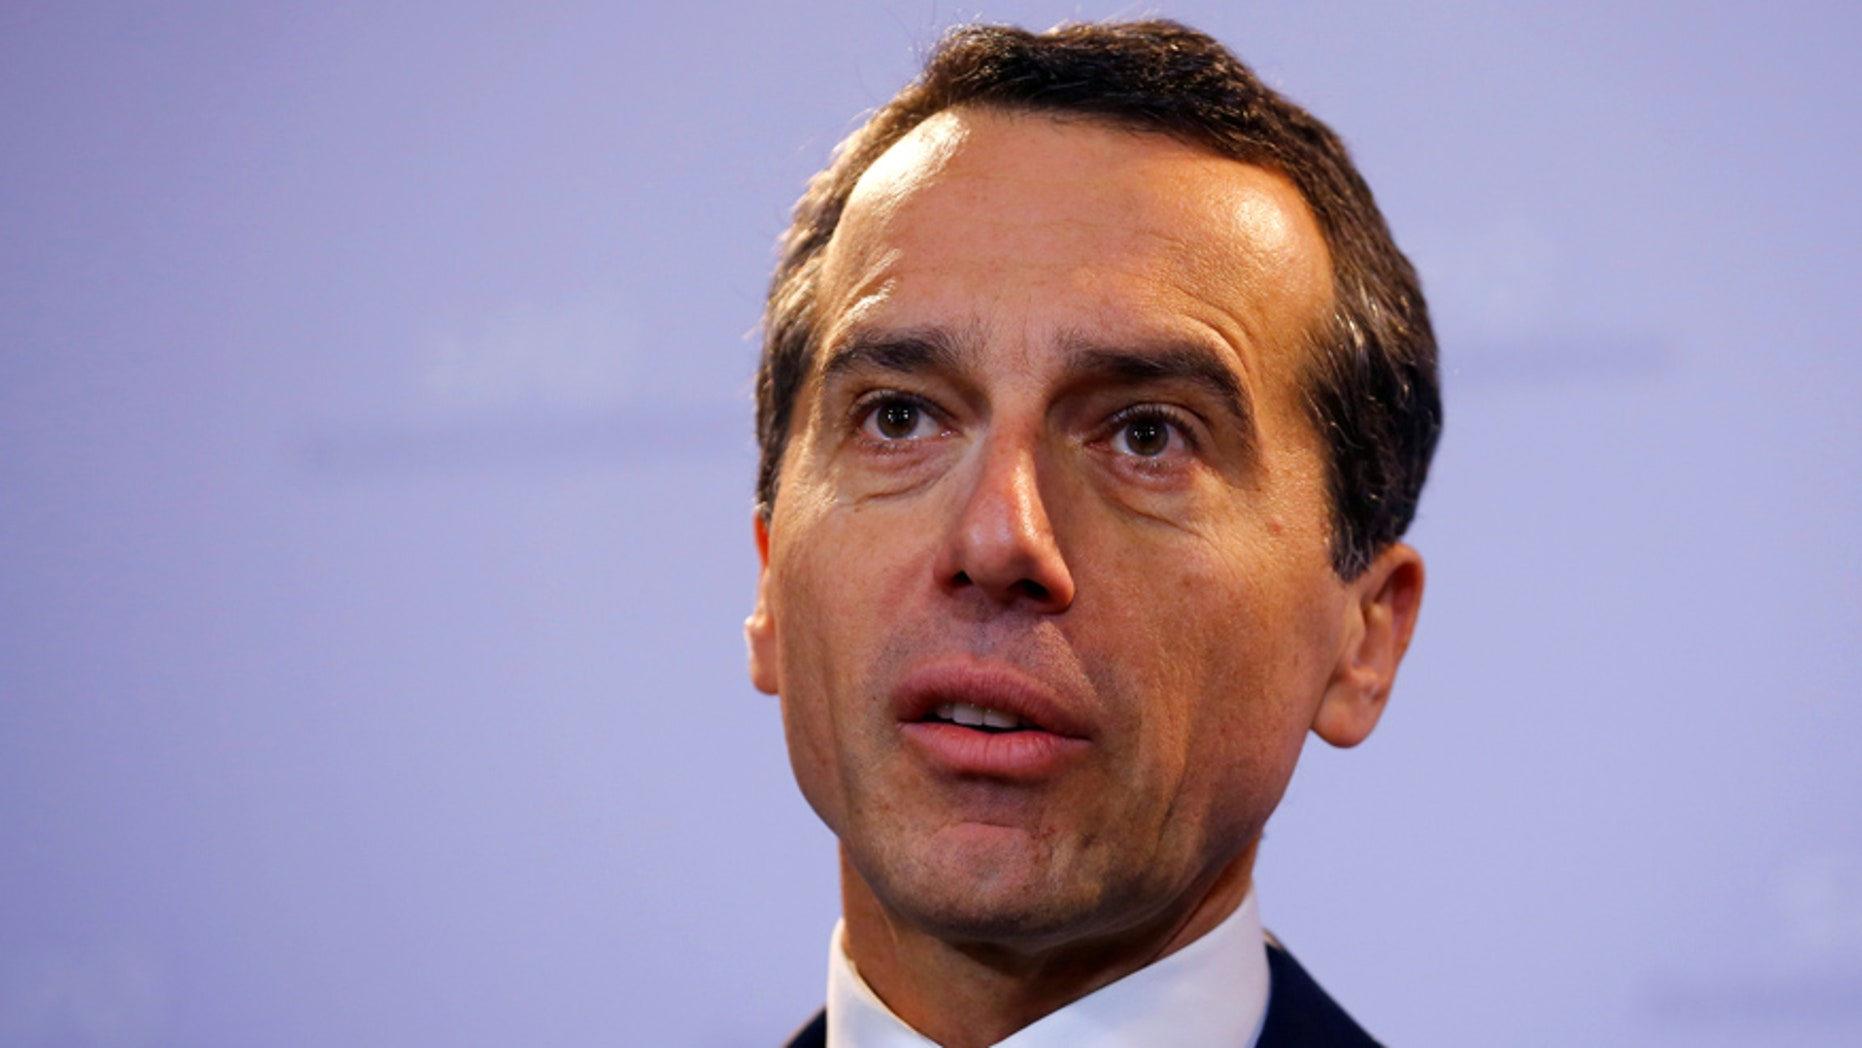 Austrian Chancellor Christian Kern addresses a news conference in Vienna, Austria October 14, 2016.   REUTERS/Leonhard Foeger - RTSS8UD